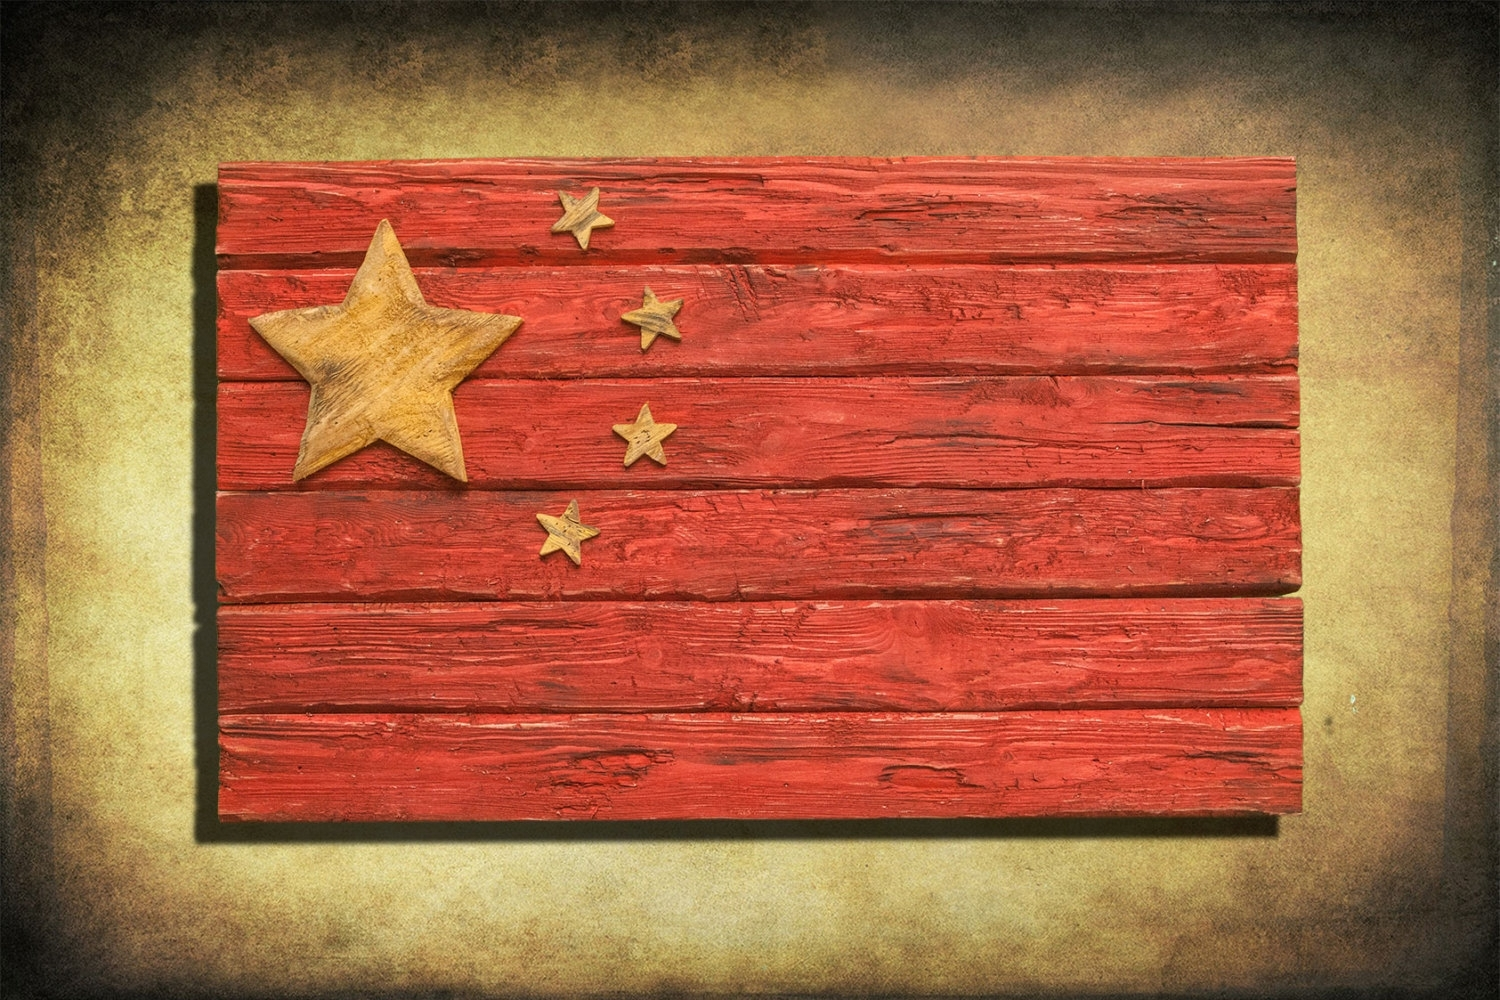 Handmade, Distressed Wooden Chinese Flag, Vintage, Art, Distressed Regarding Best And Newest Chinese Wall Art (View 16 of 20)